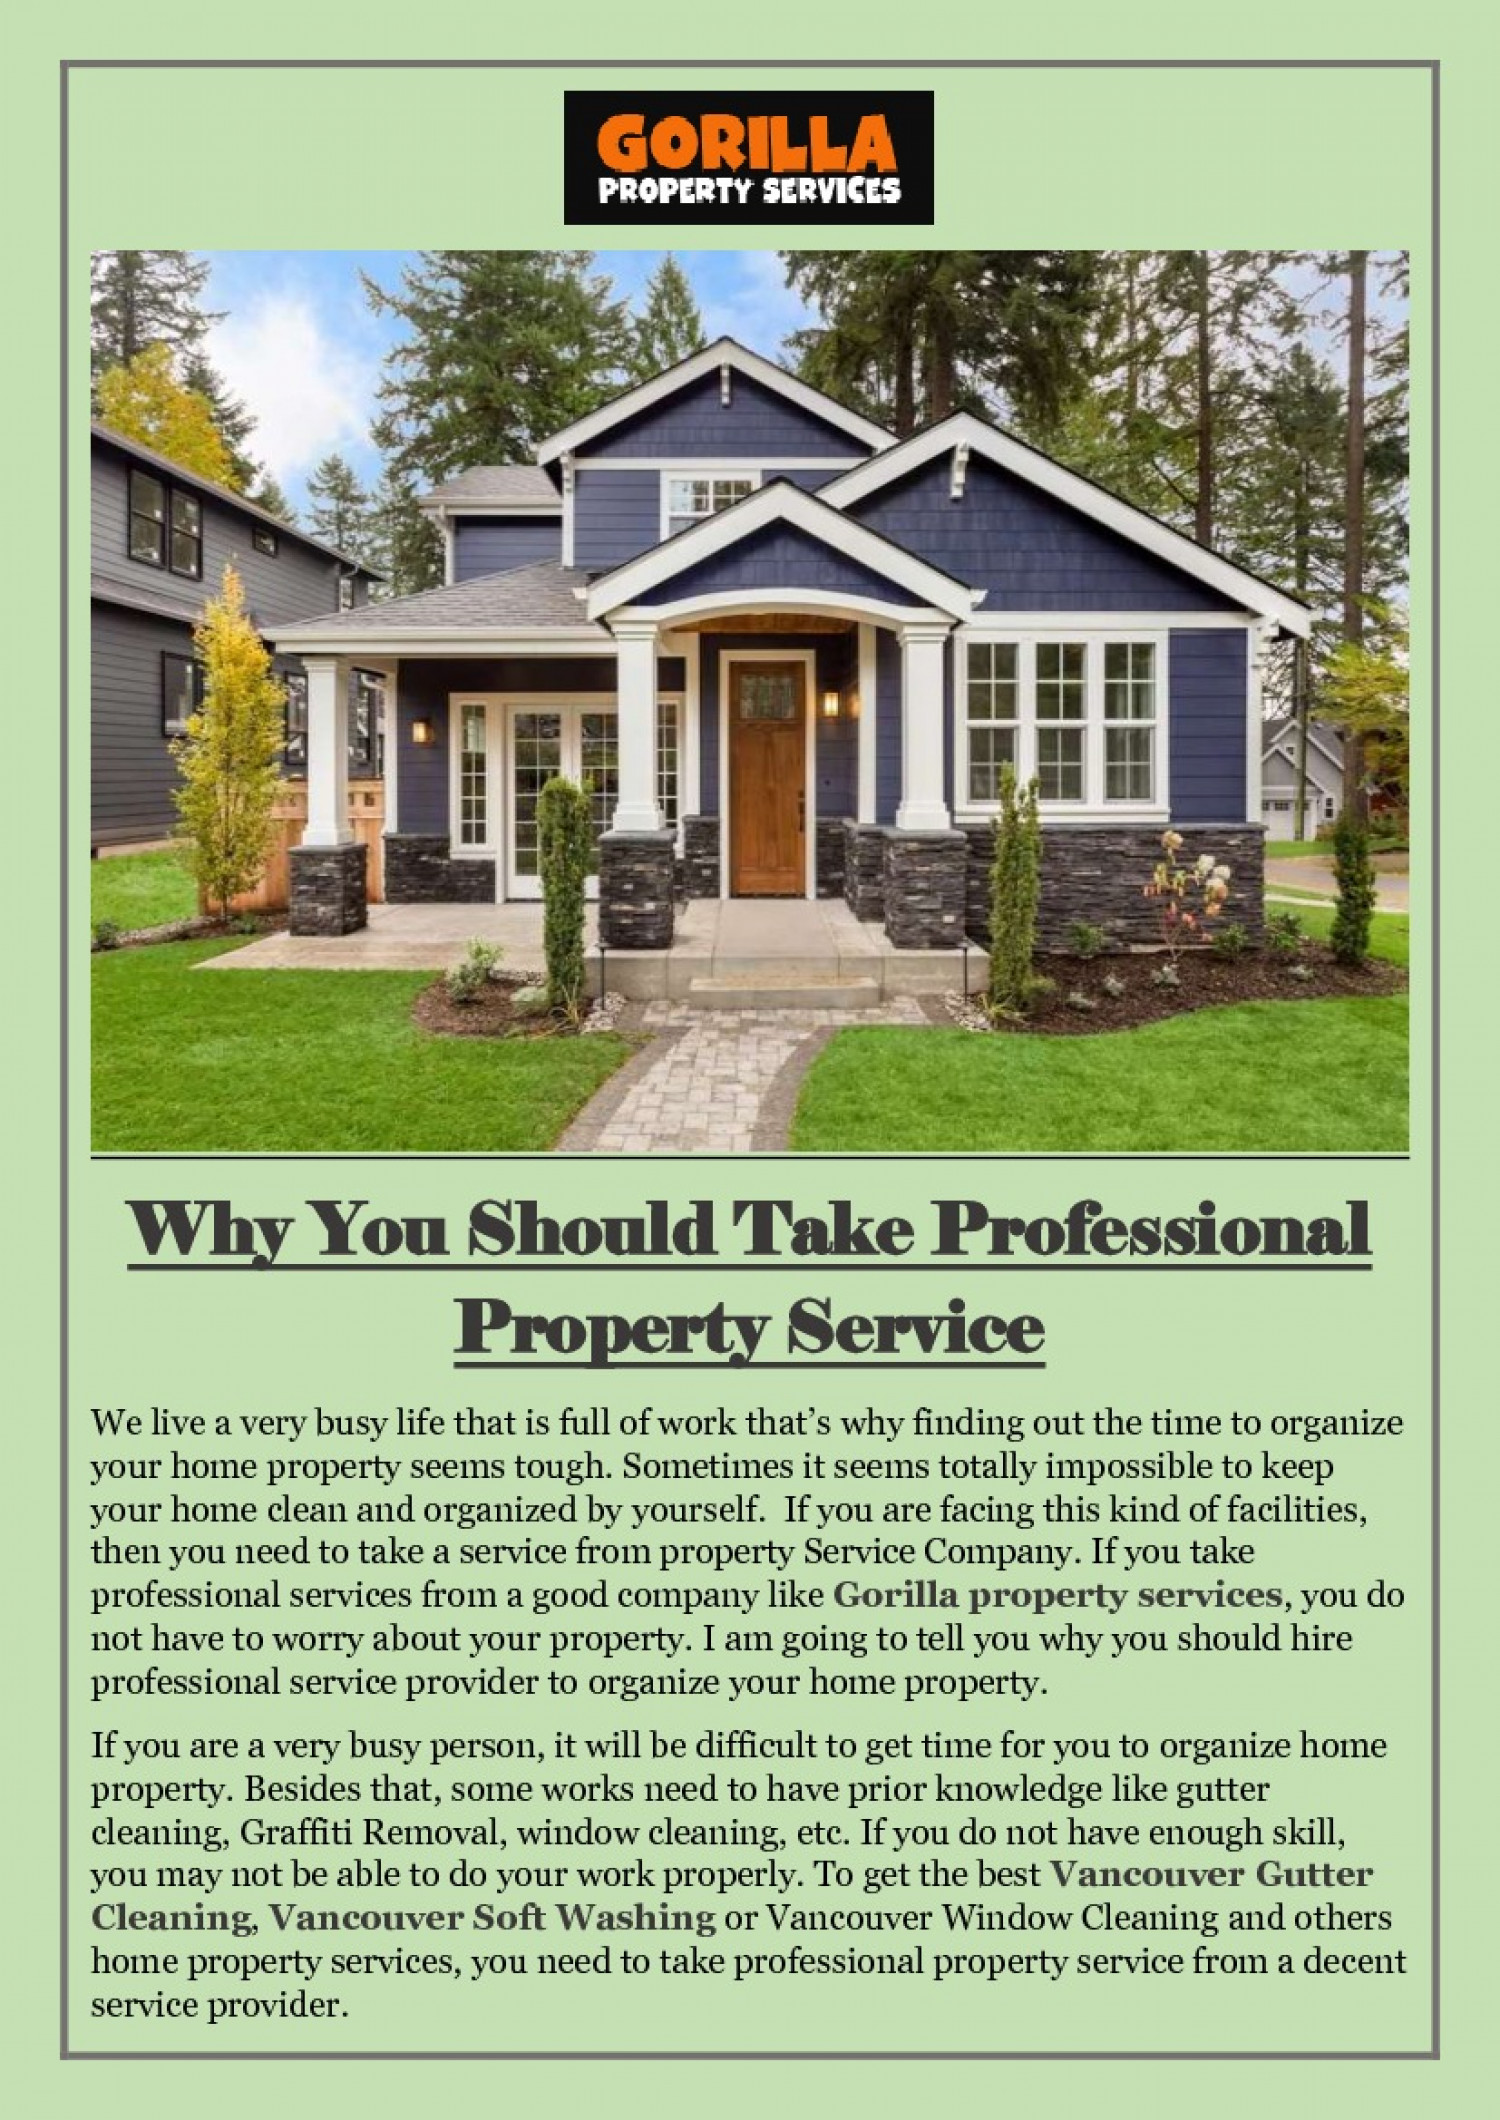 Why You Should Take Professional Property Service  Infographic